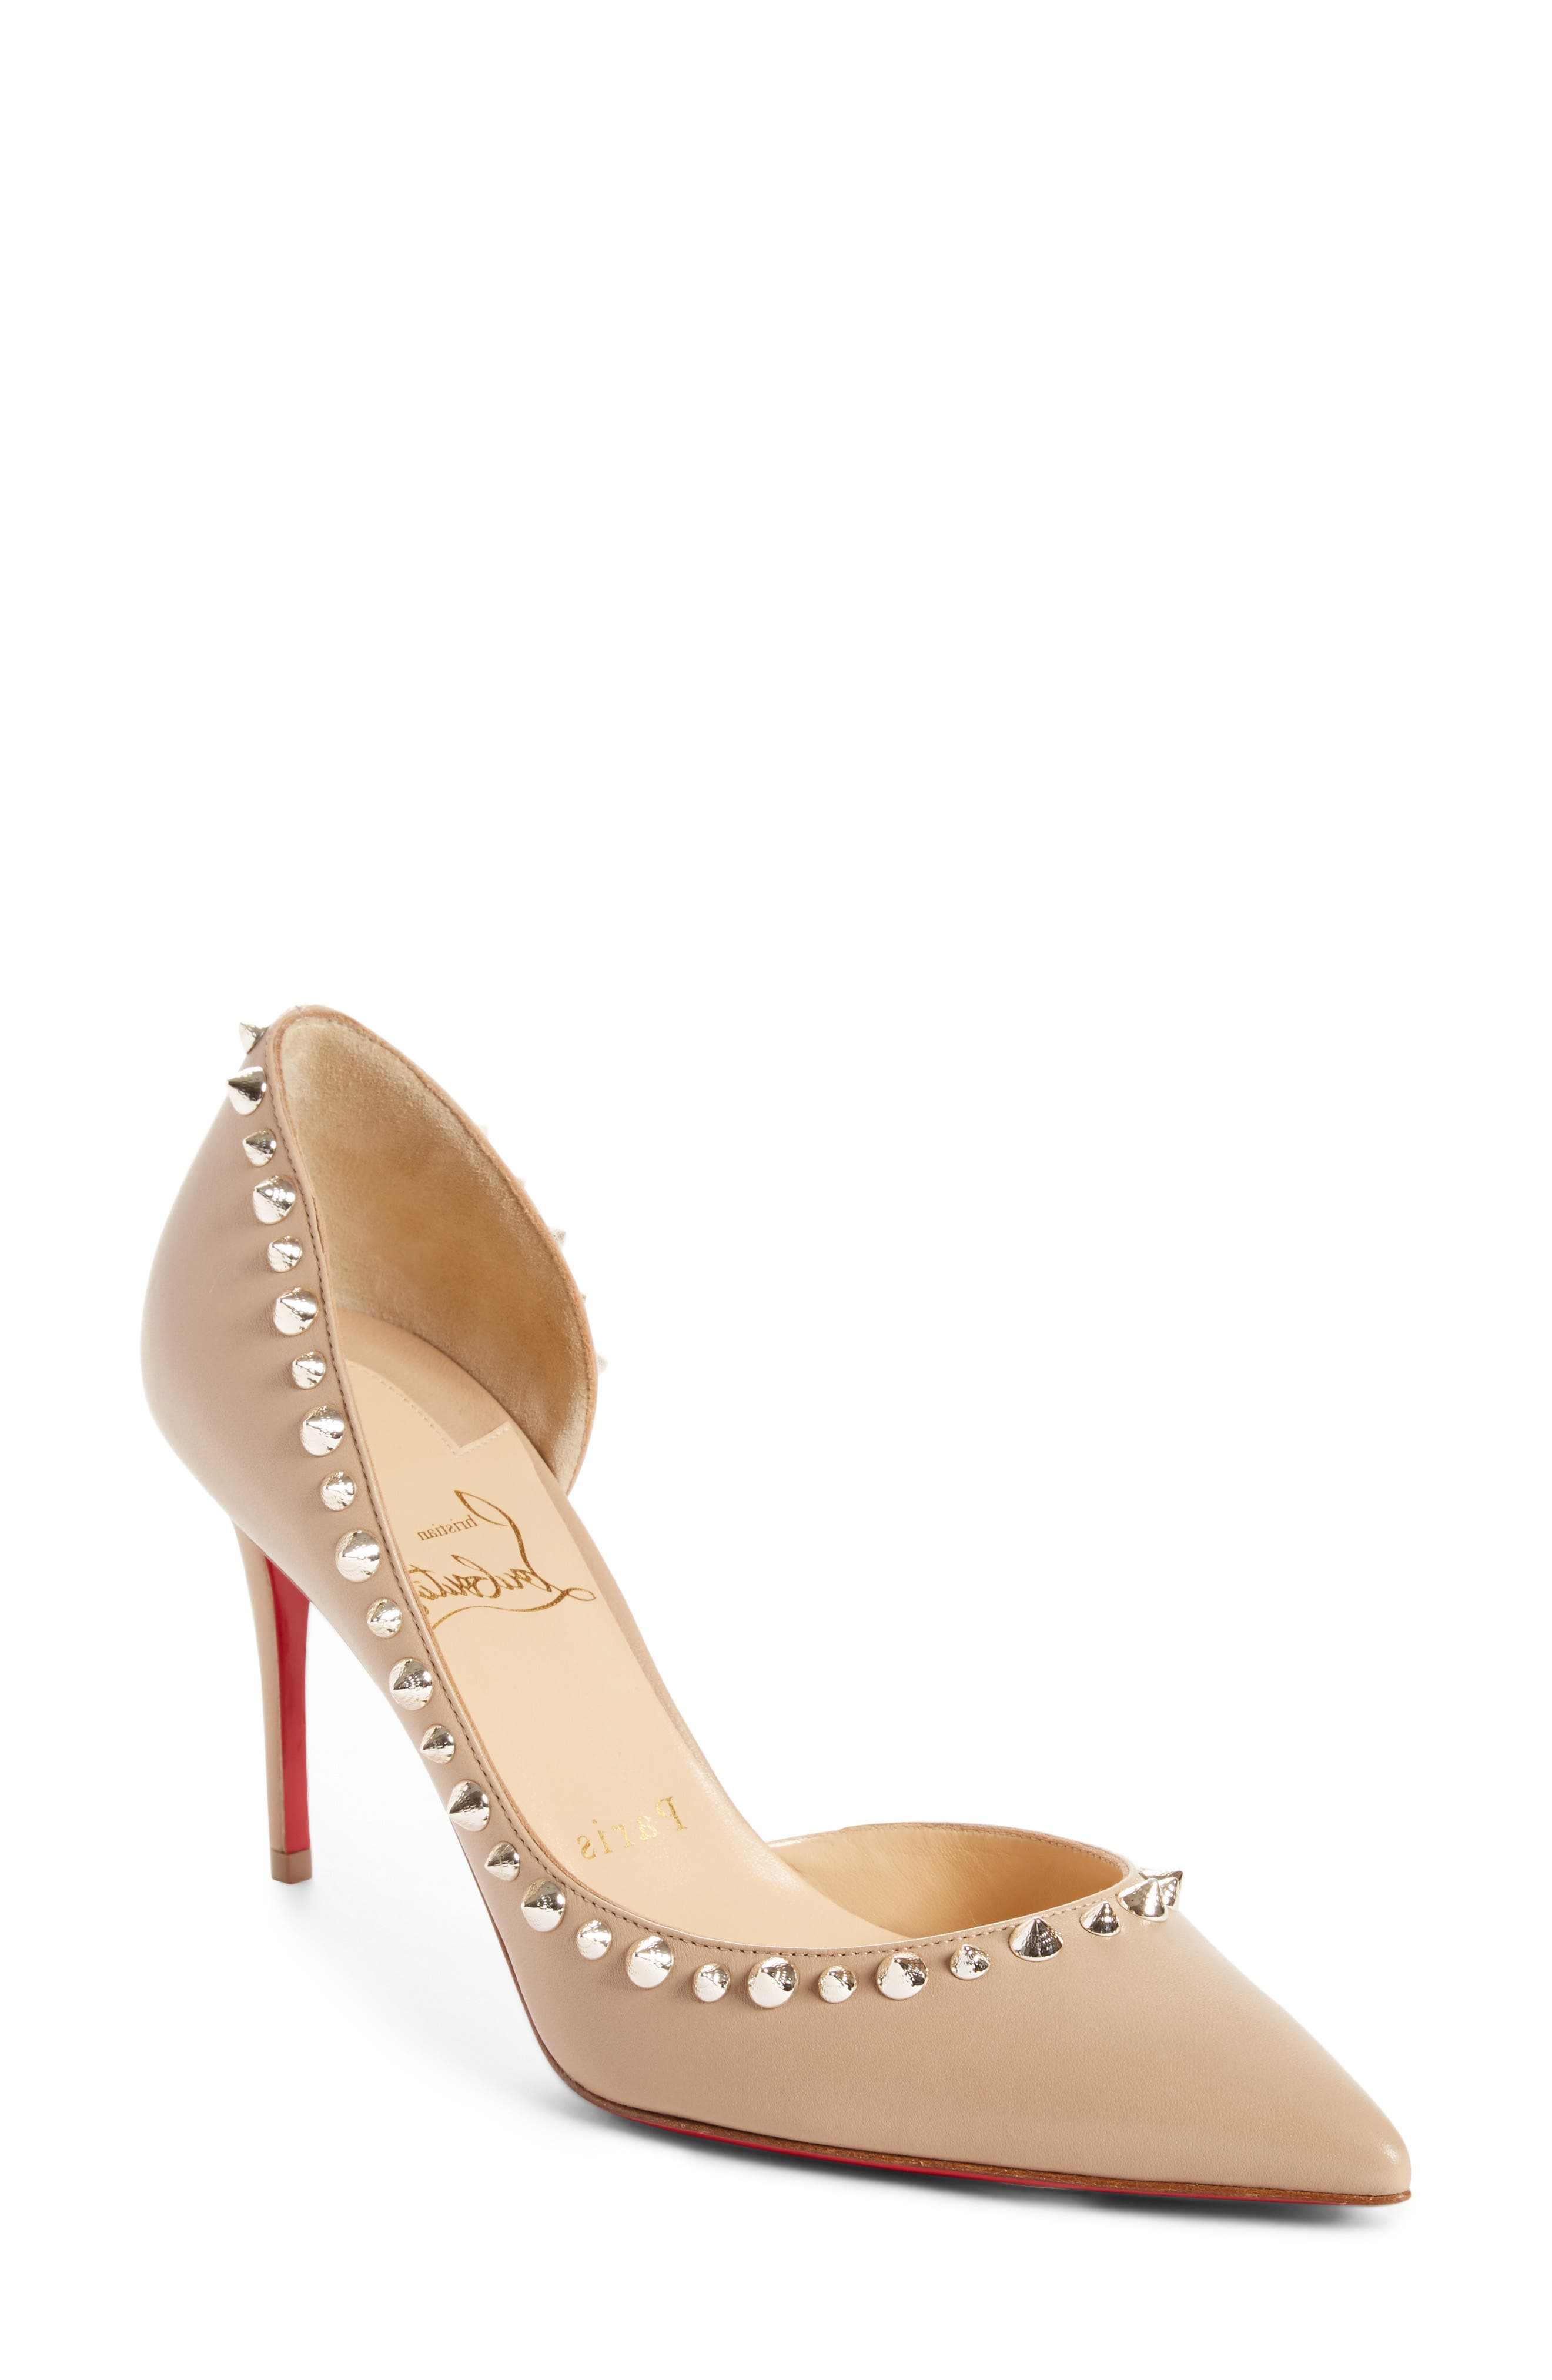 Irishell Studded Half d'Orsay Pump,                         Main,                         color, NUDE/ WHITE GOLD